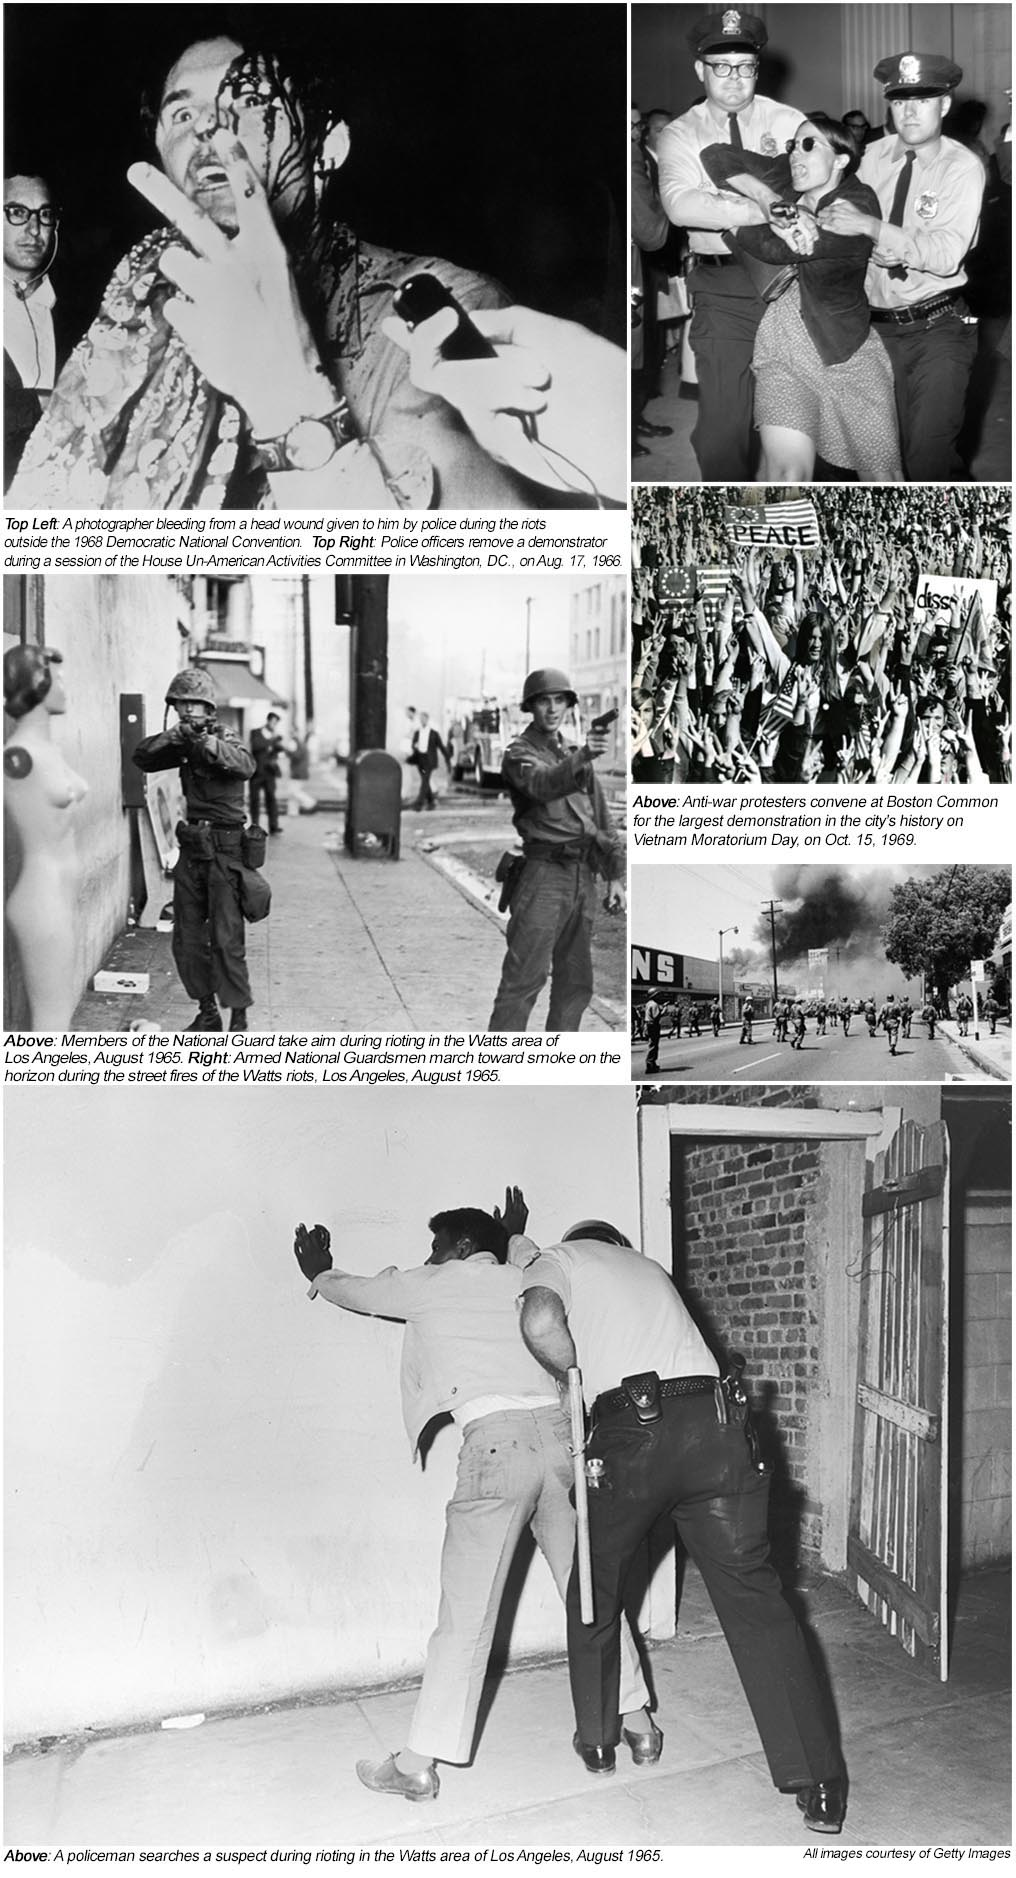 ... The Stonewall Riots In 1969 And A Number Of Anti Vietnam War  Demonstrations That Featured Violent Confrontations Between Police And  Civilians.